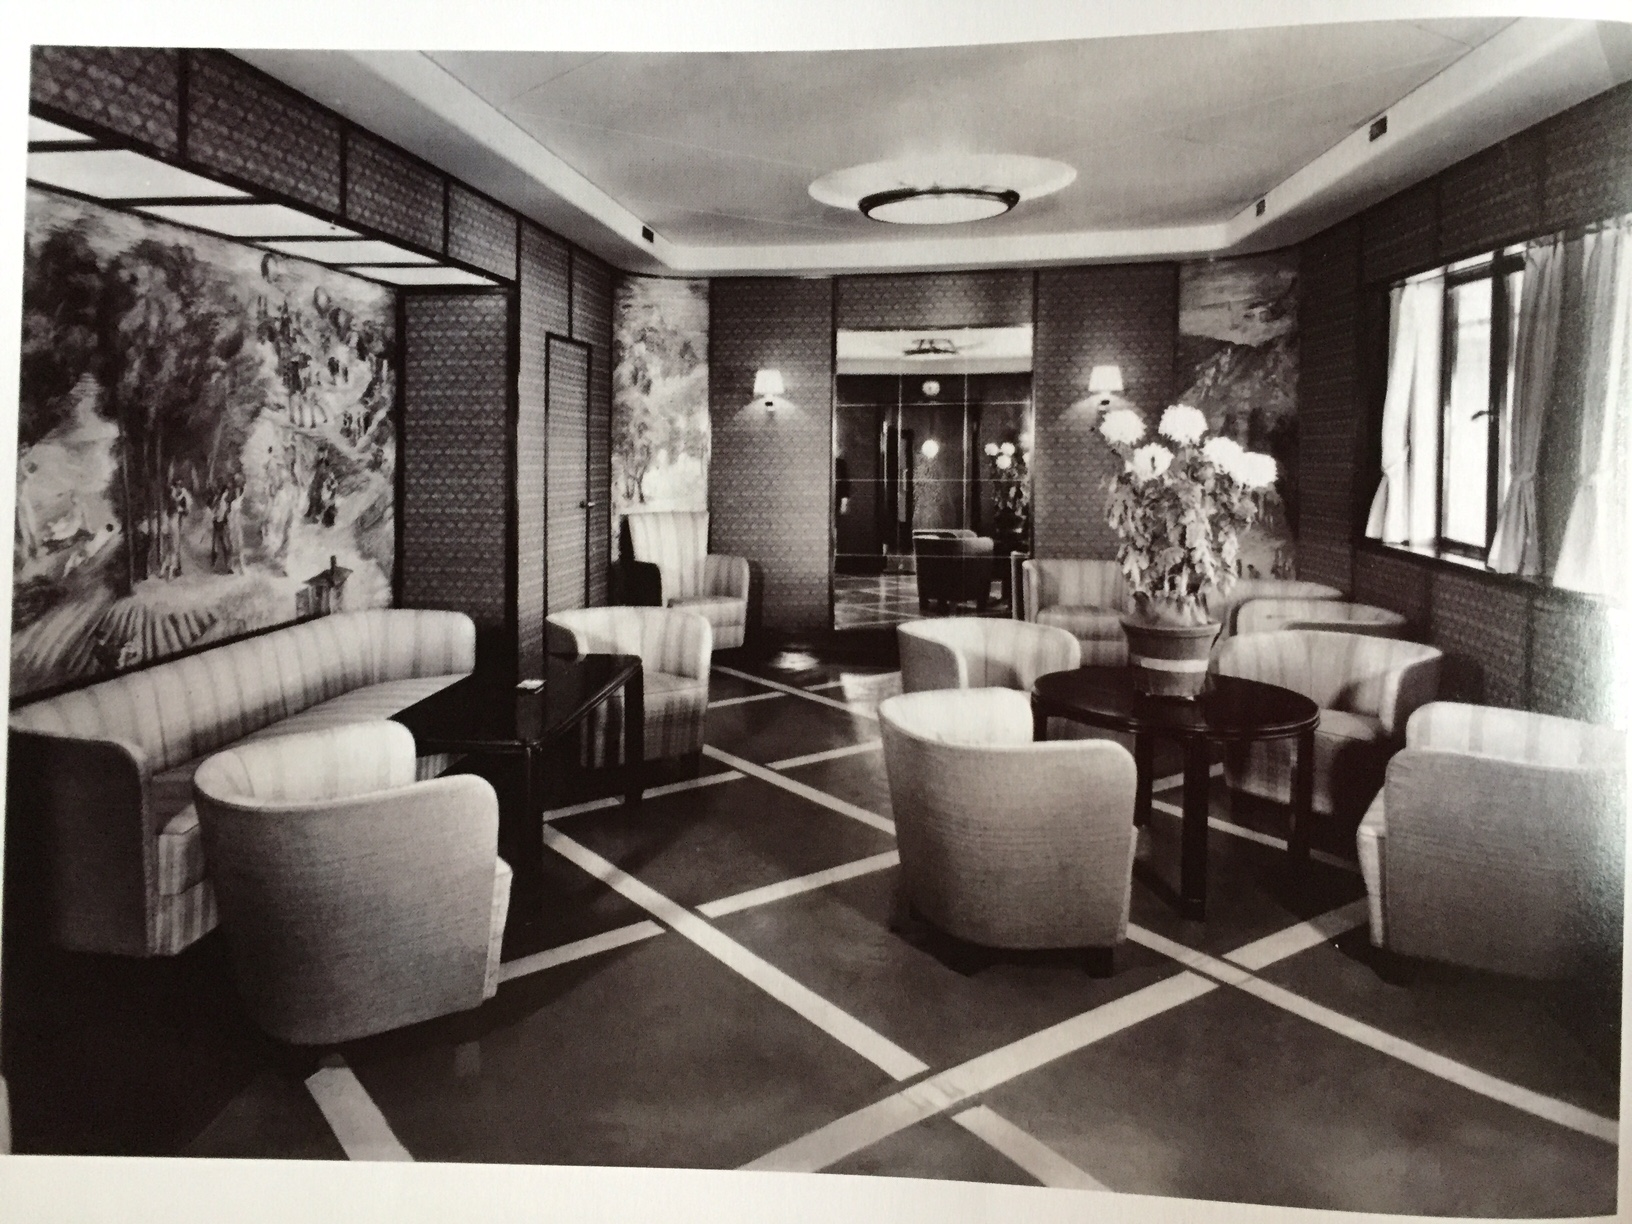 The Main lounge aboard the Transatlantic liner, the S.S. Ile de France 1926